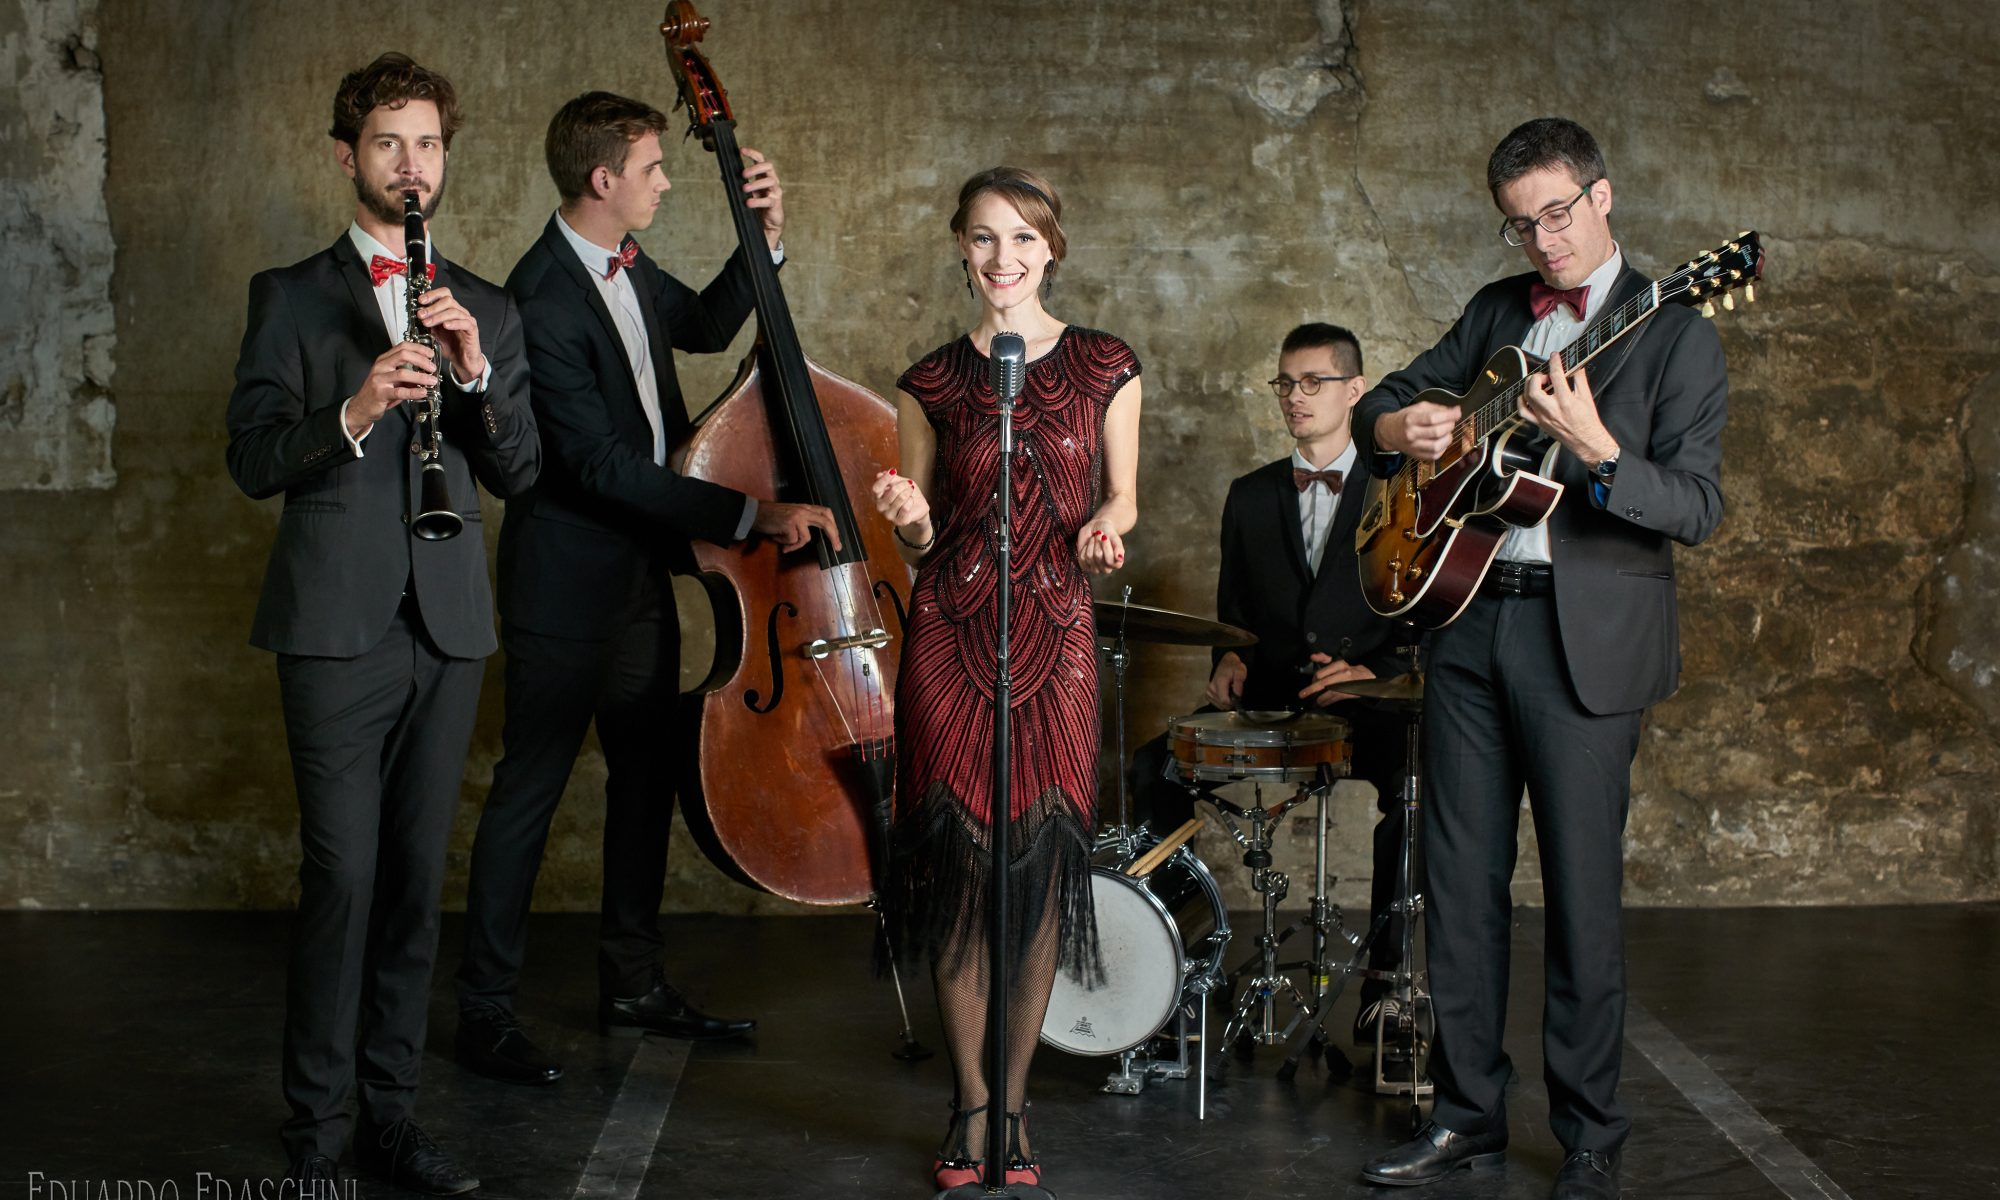 Clara & the Scarlet Swing Band